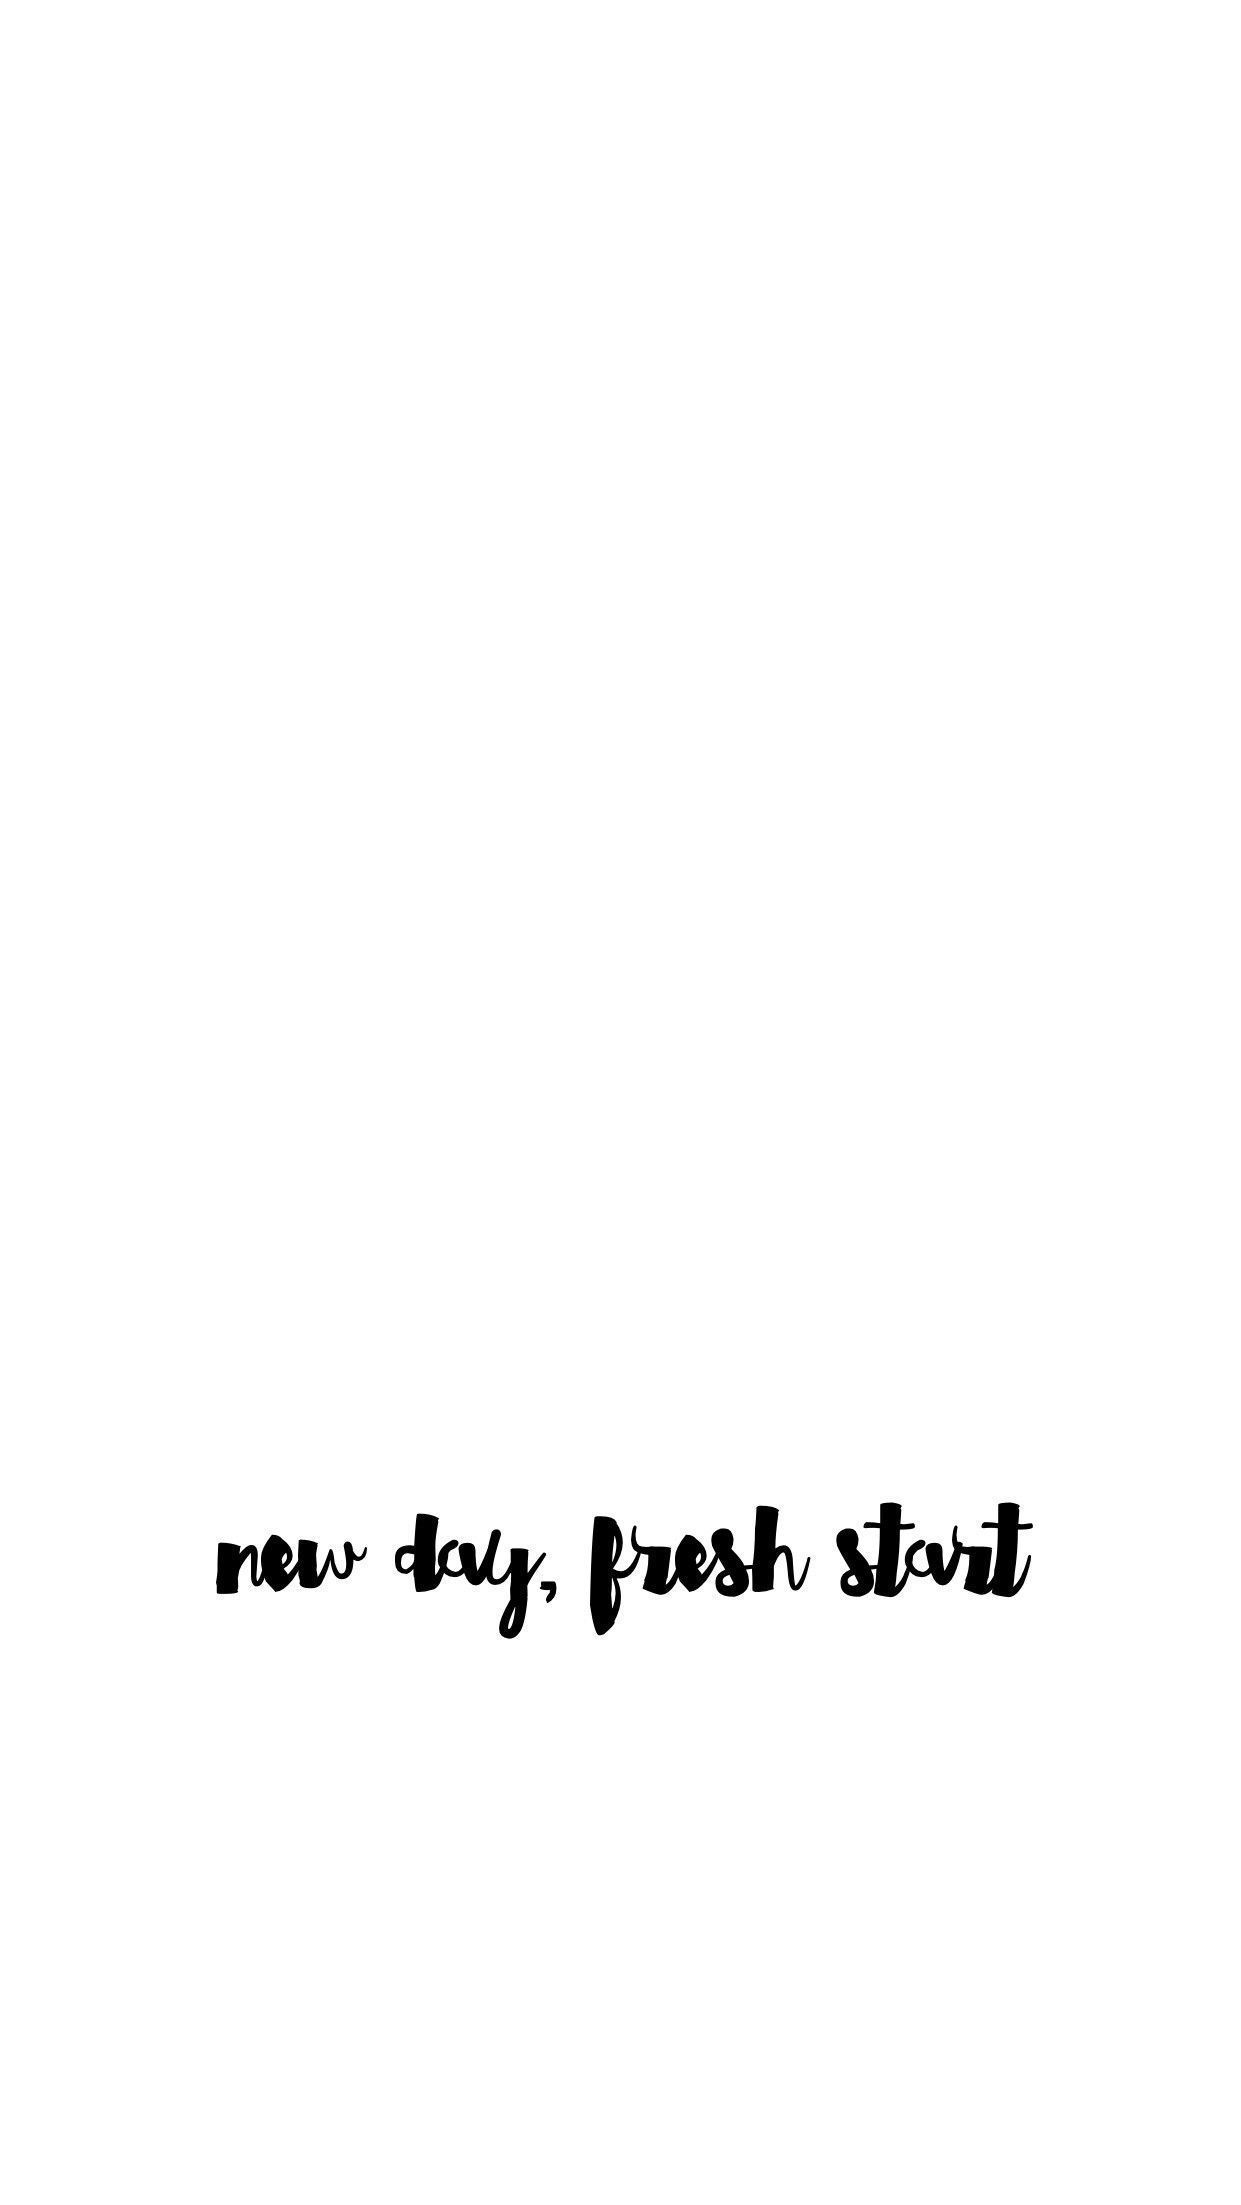 Best Simple Quotes Iphone Background To Motivate You Inspirational Quotes Wallpapers Iphone Wallpaper Quotes Funny Iphone Background Quote